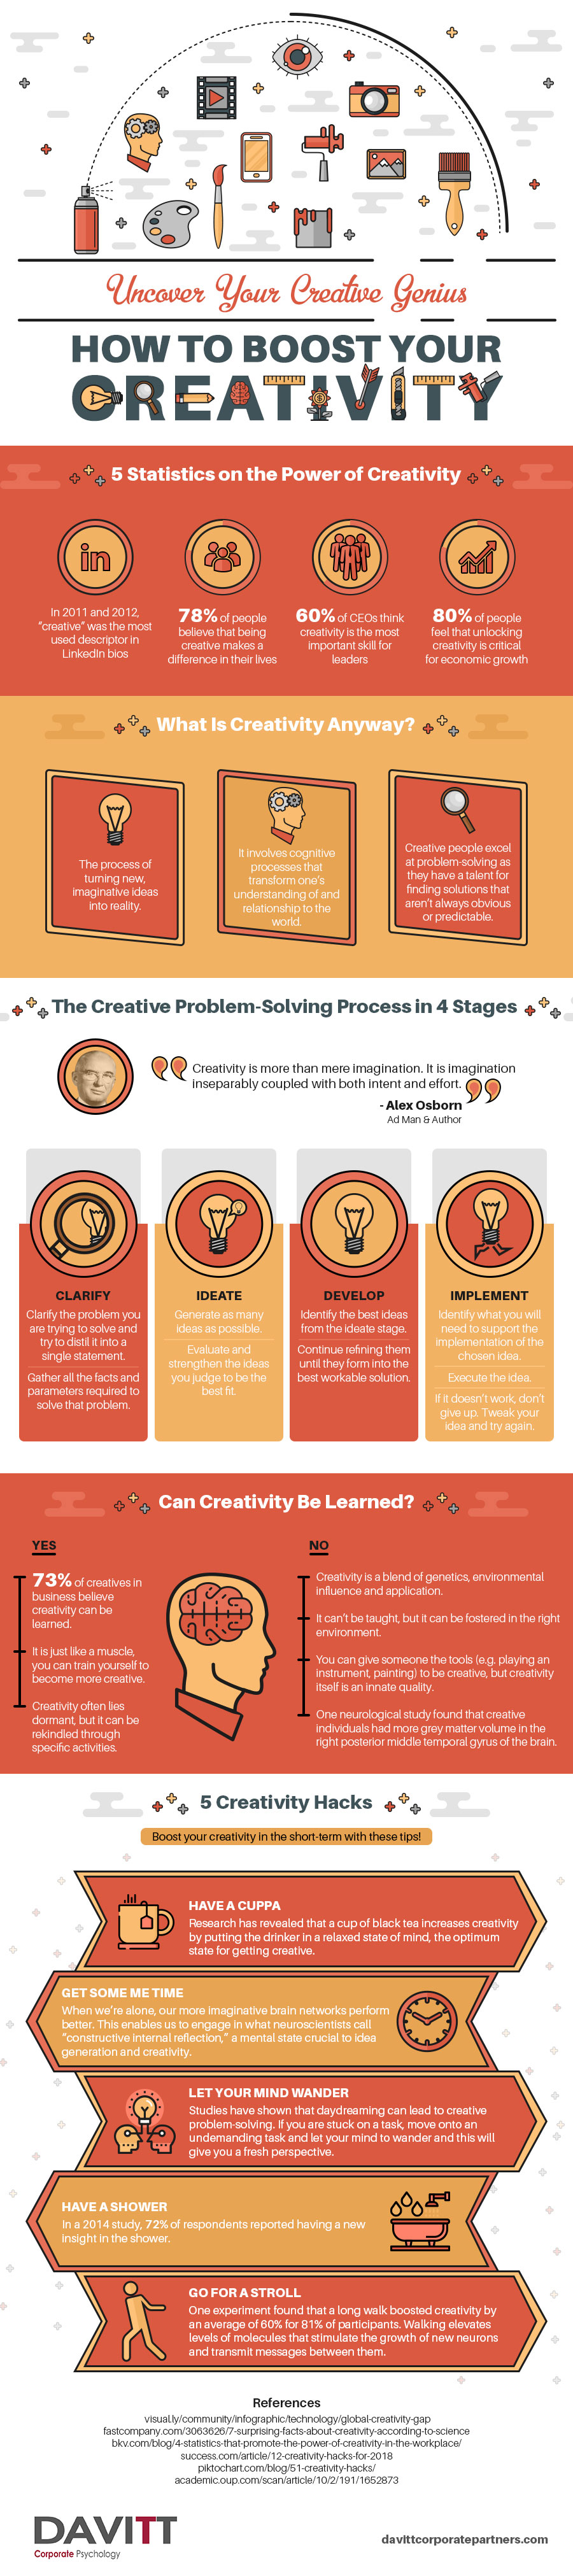 How to boost your creativity infographic